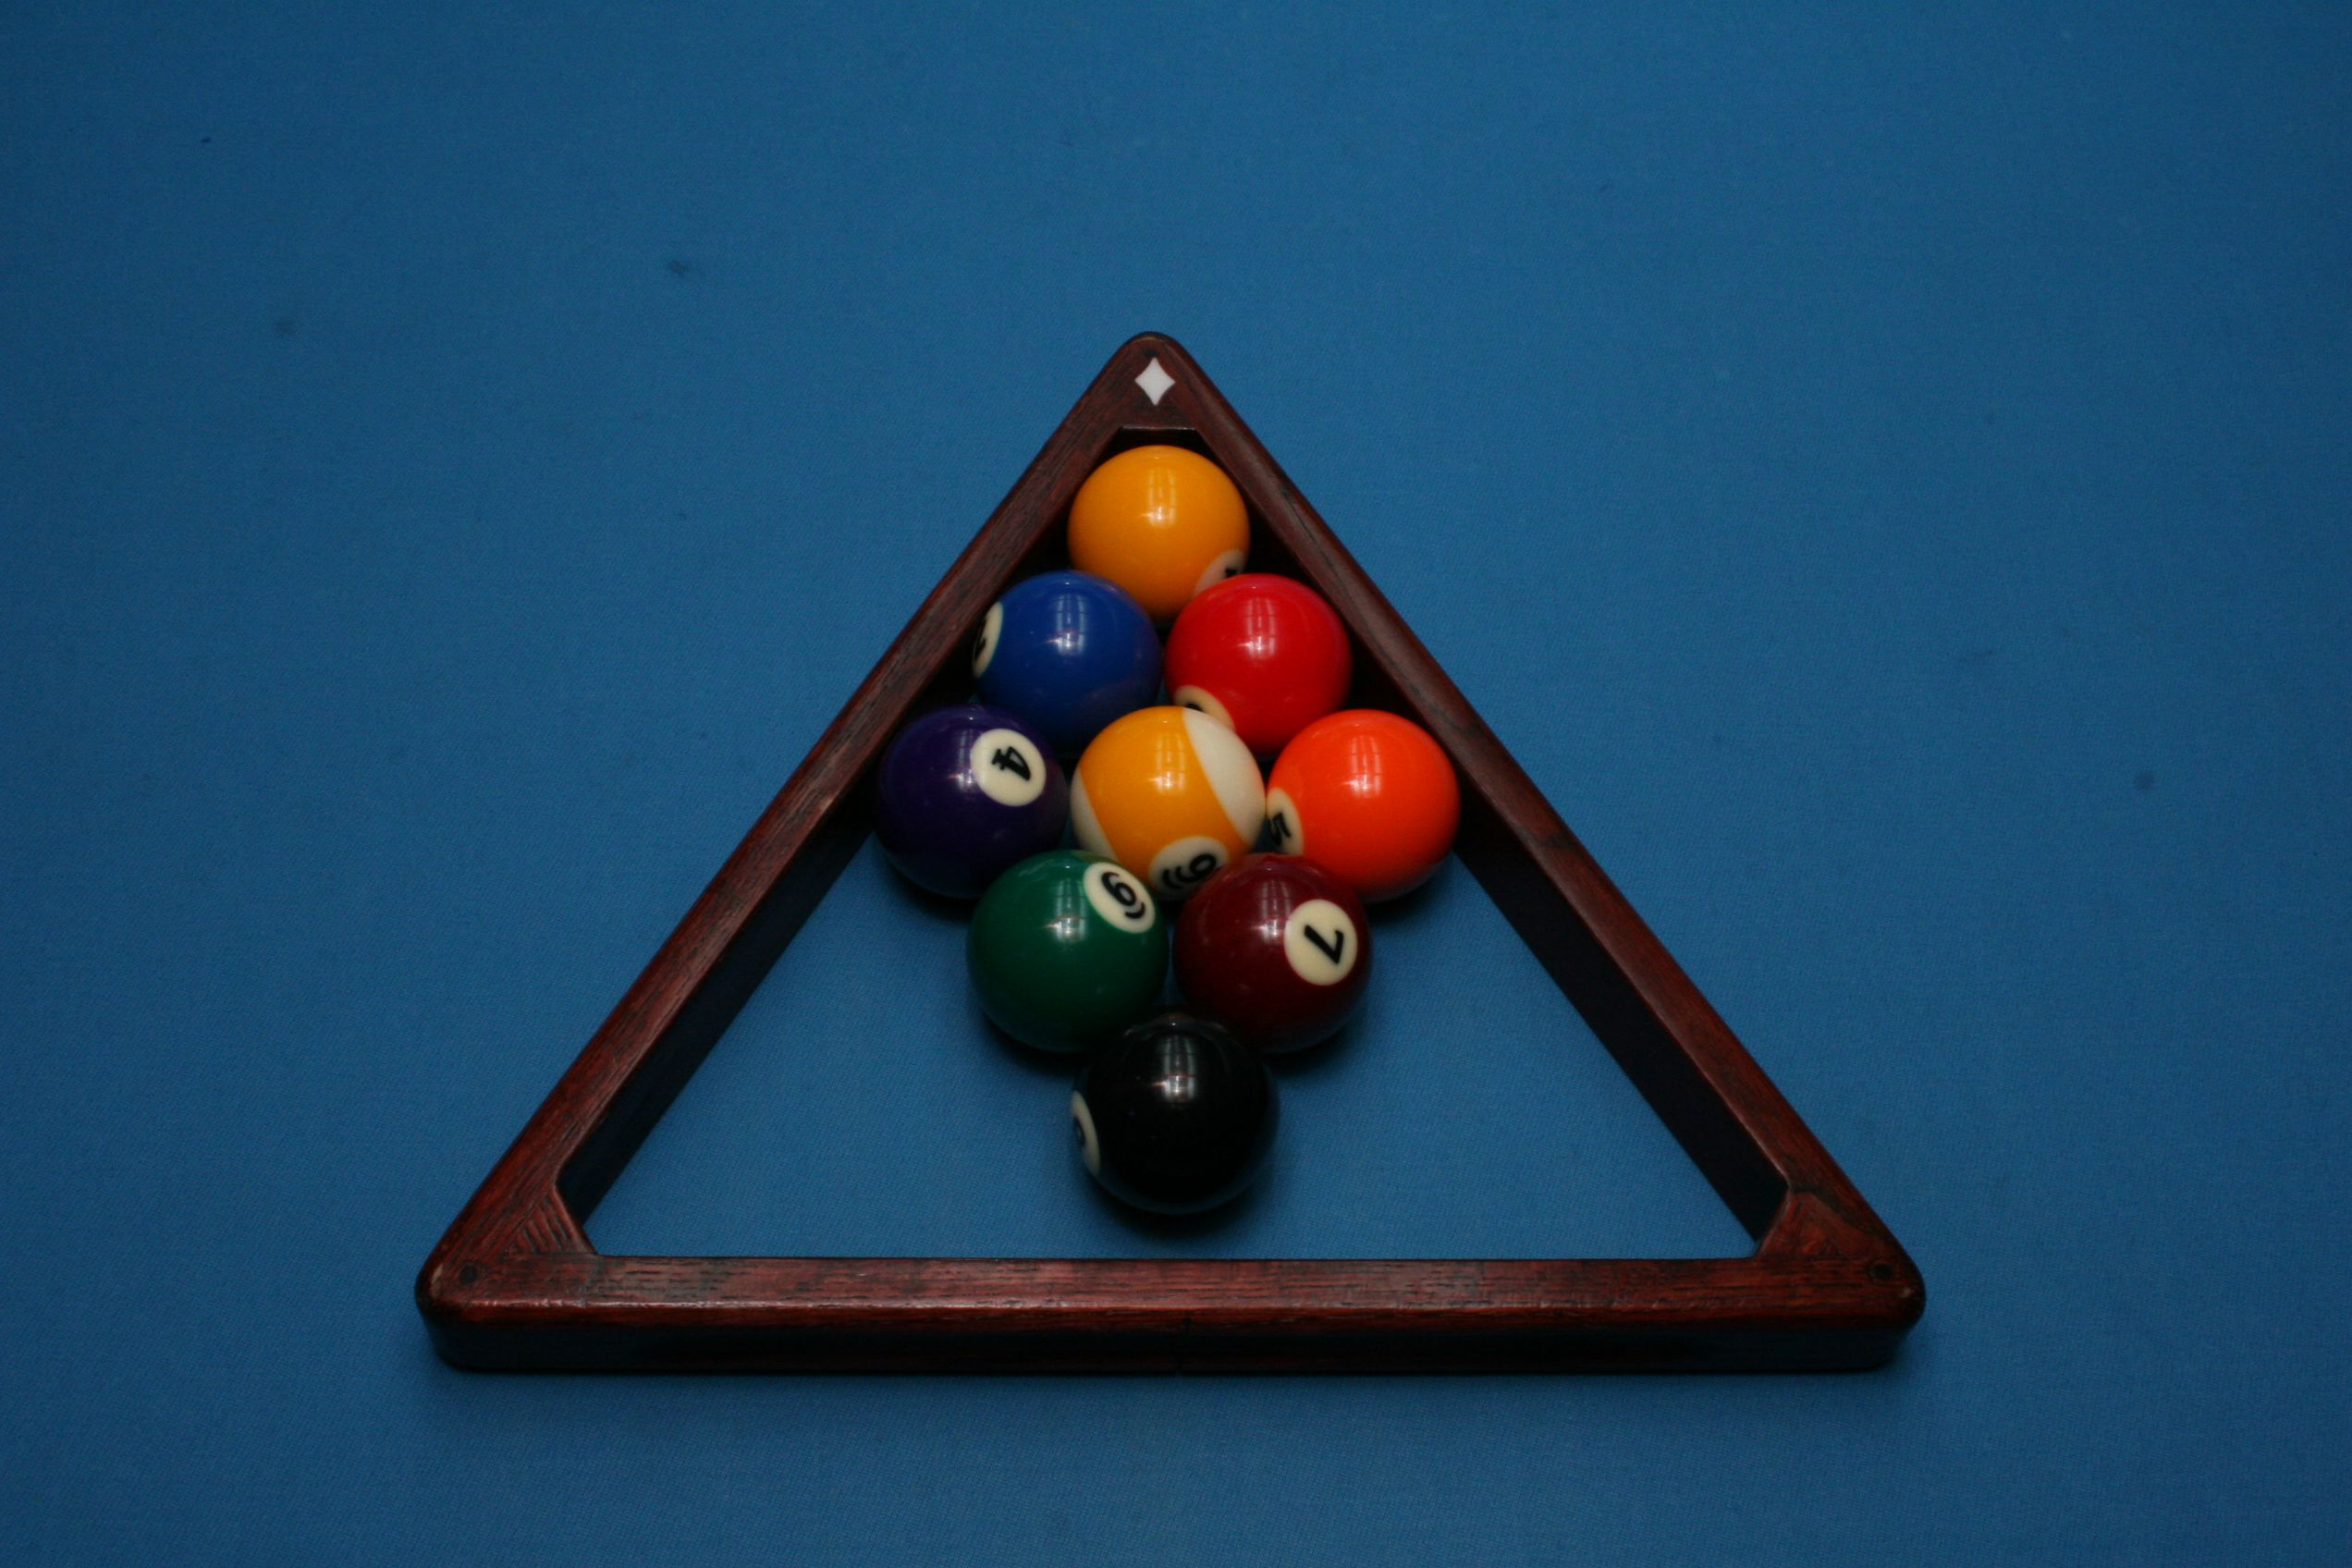 9 Ball Game Rules and Strategy